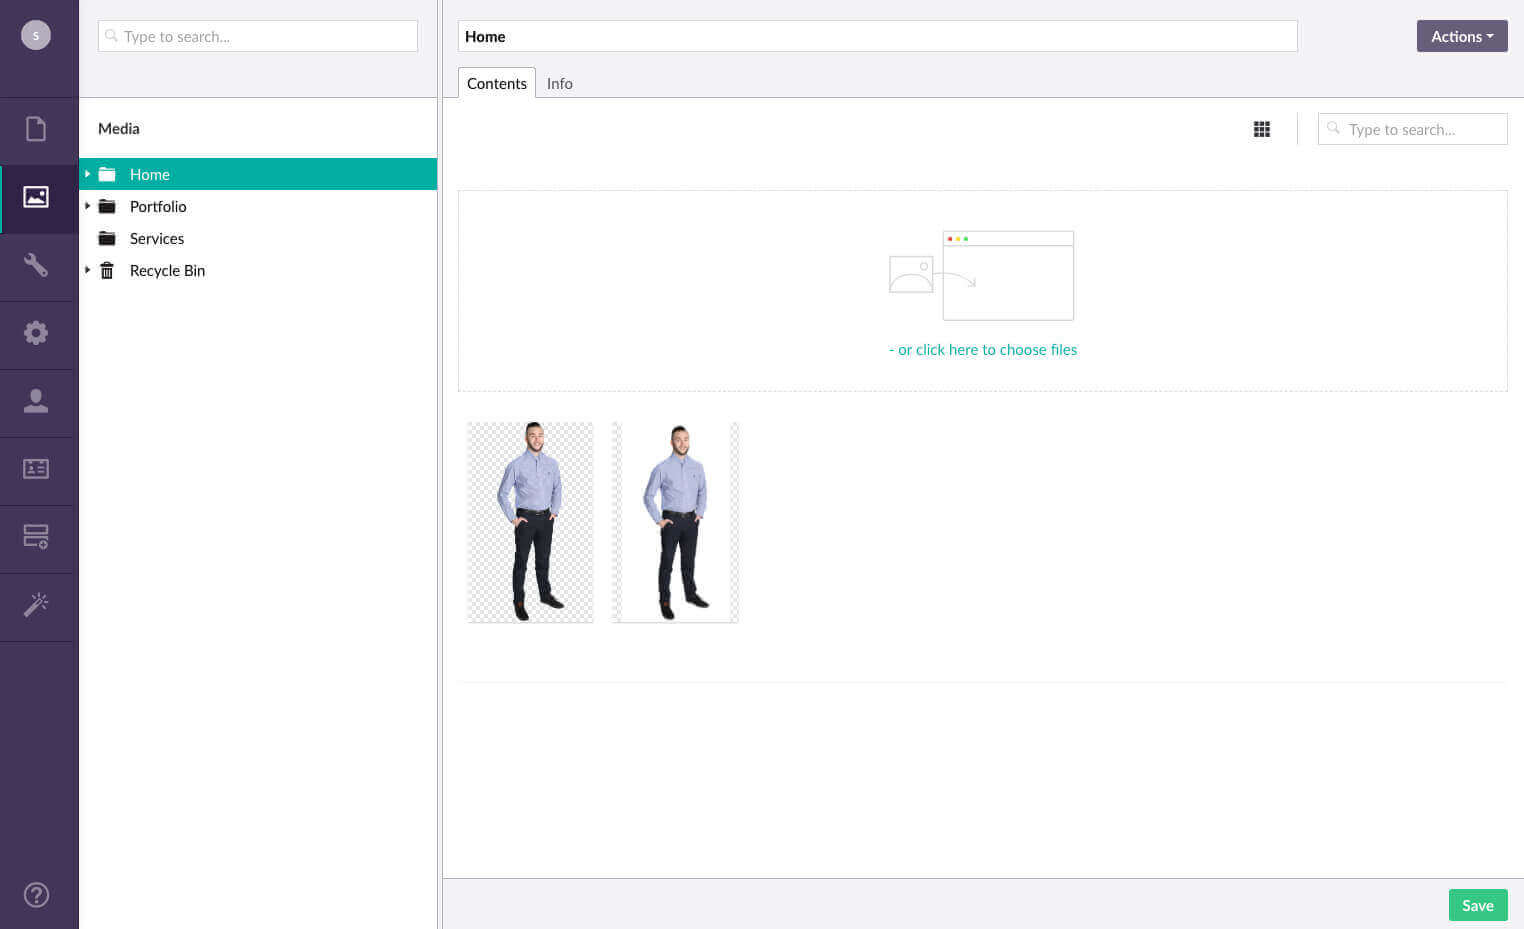 Easy to add images. Simply drag your images into the media tab in Umbraco.